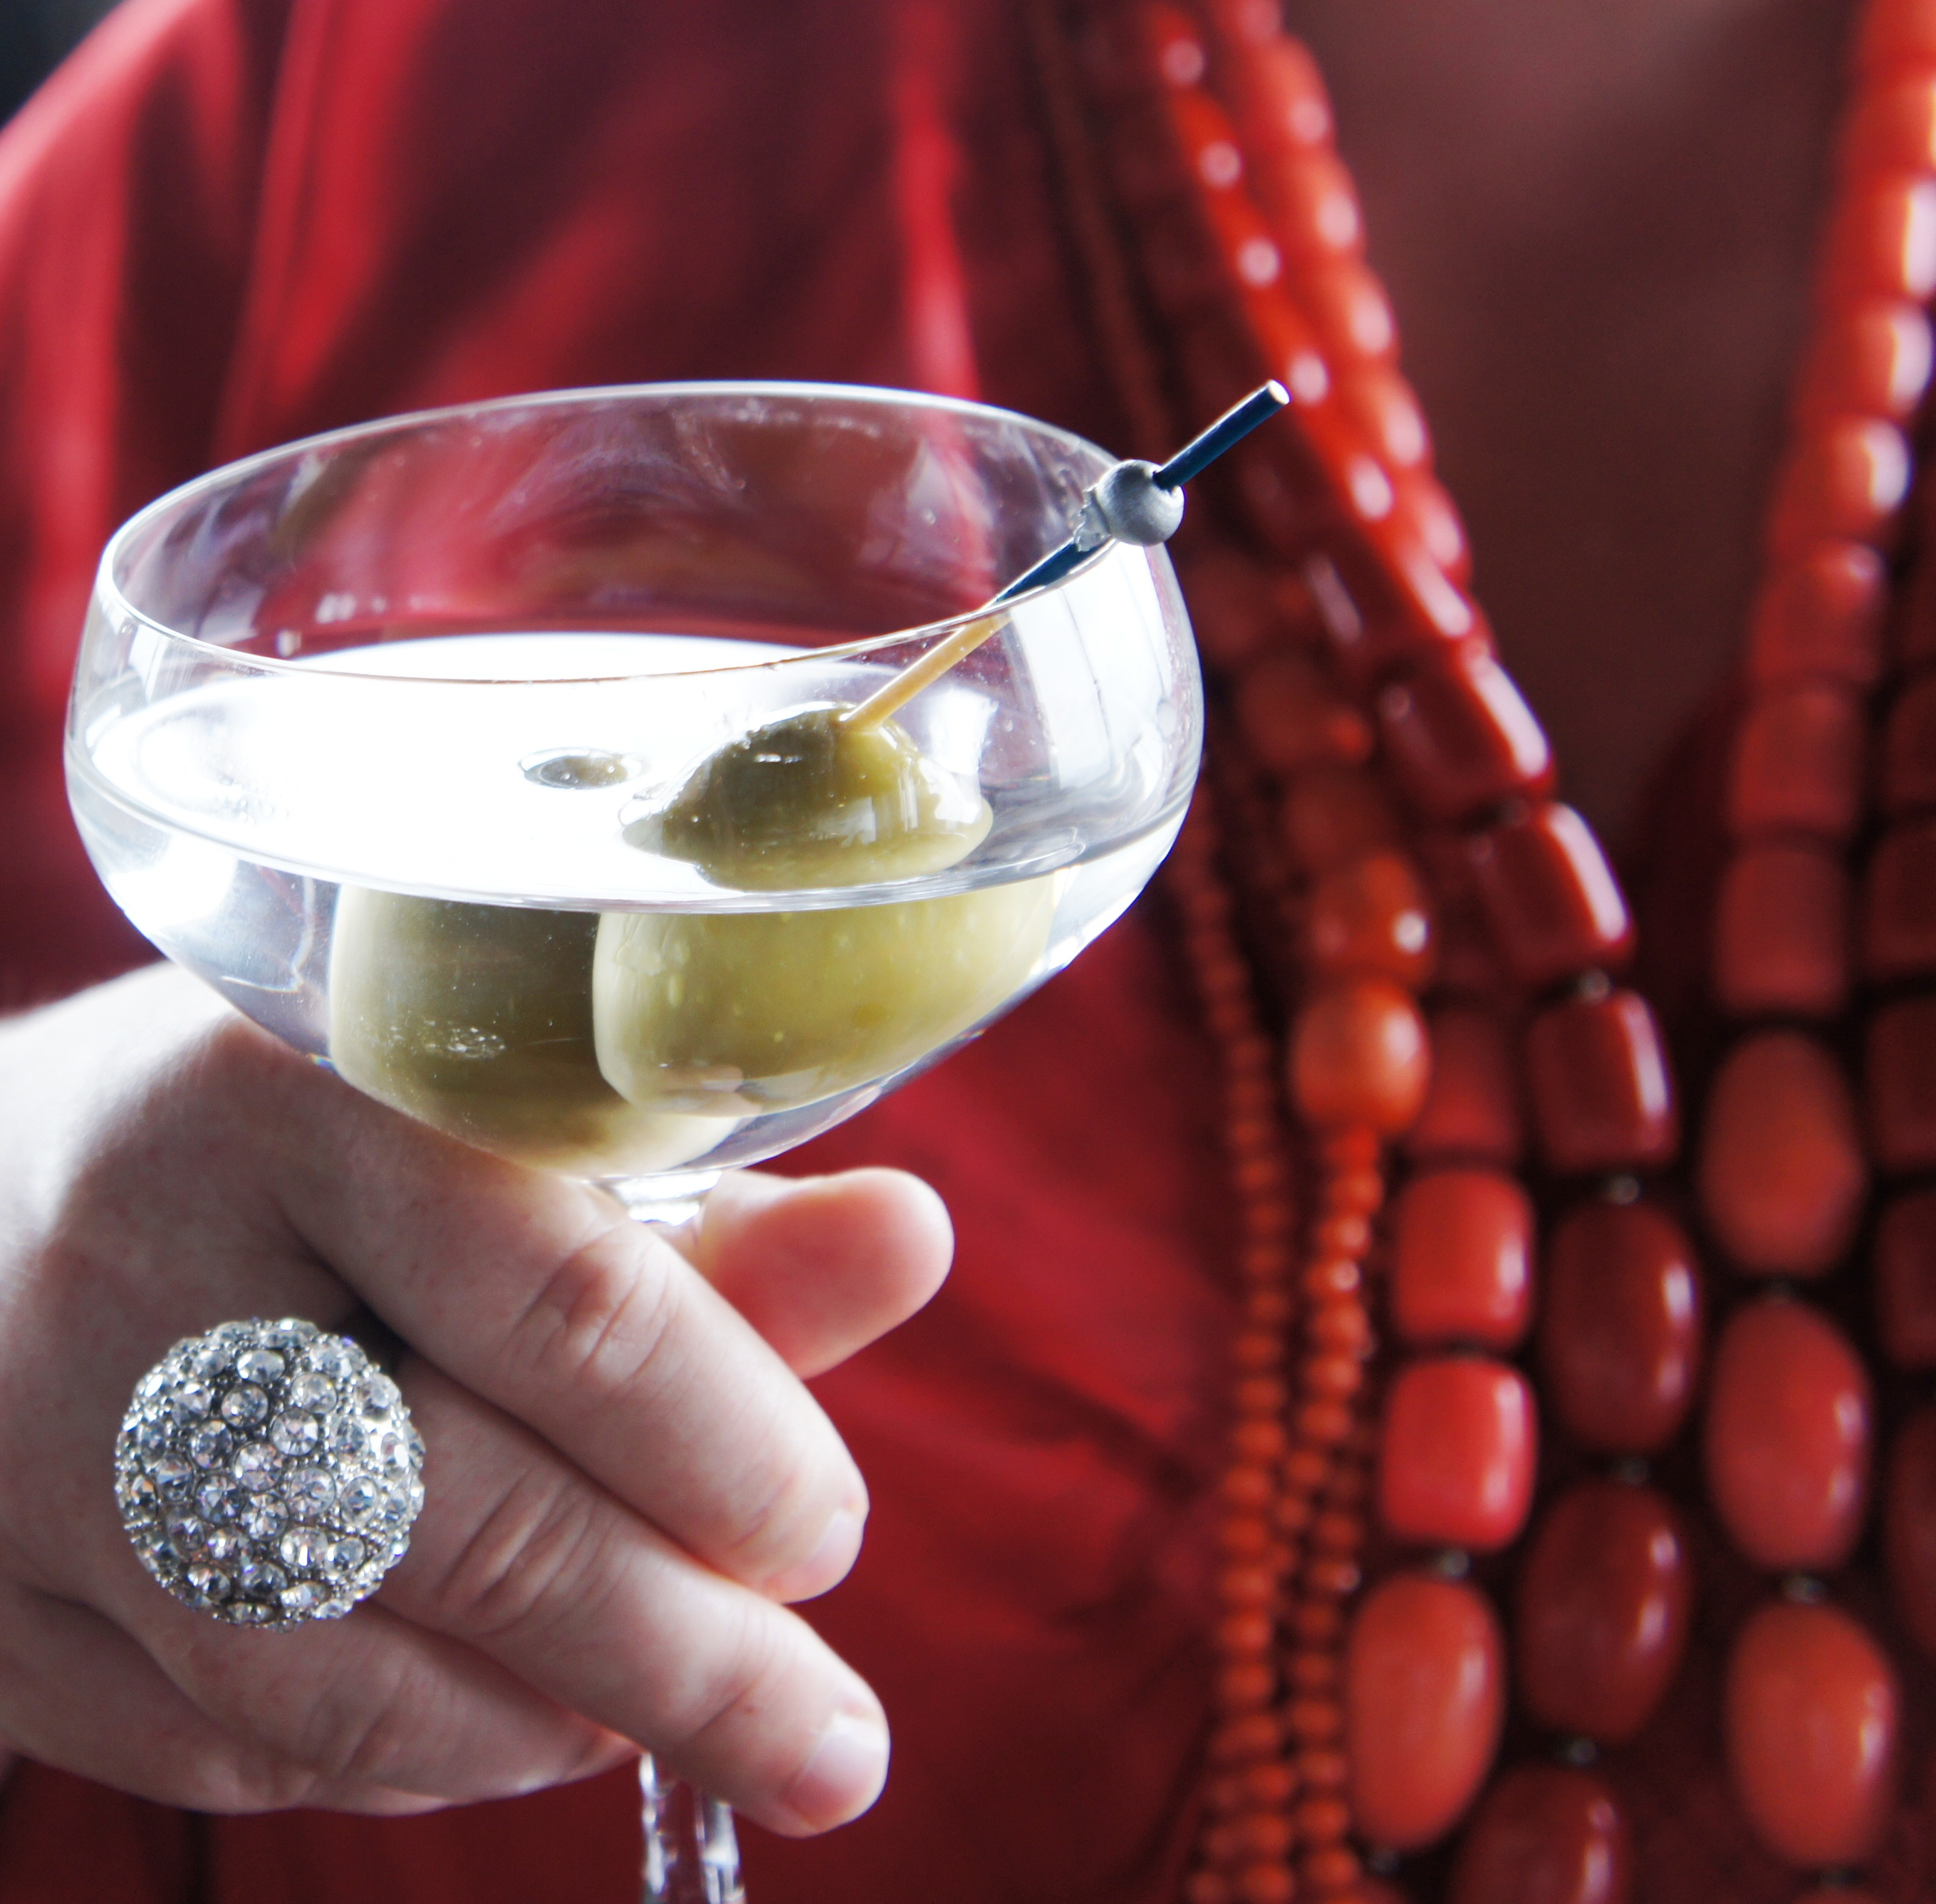 Coral beads, bling ring and a martini with olives at Lui Bar via mylusciouslife